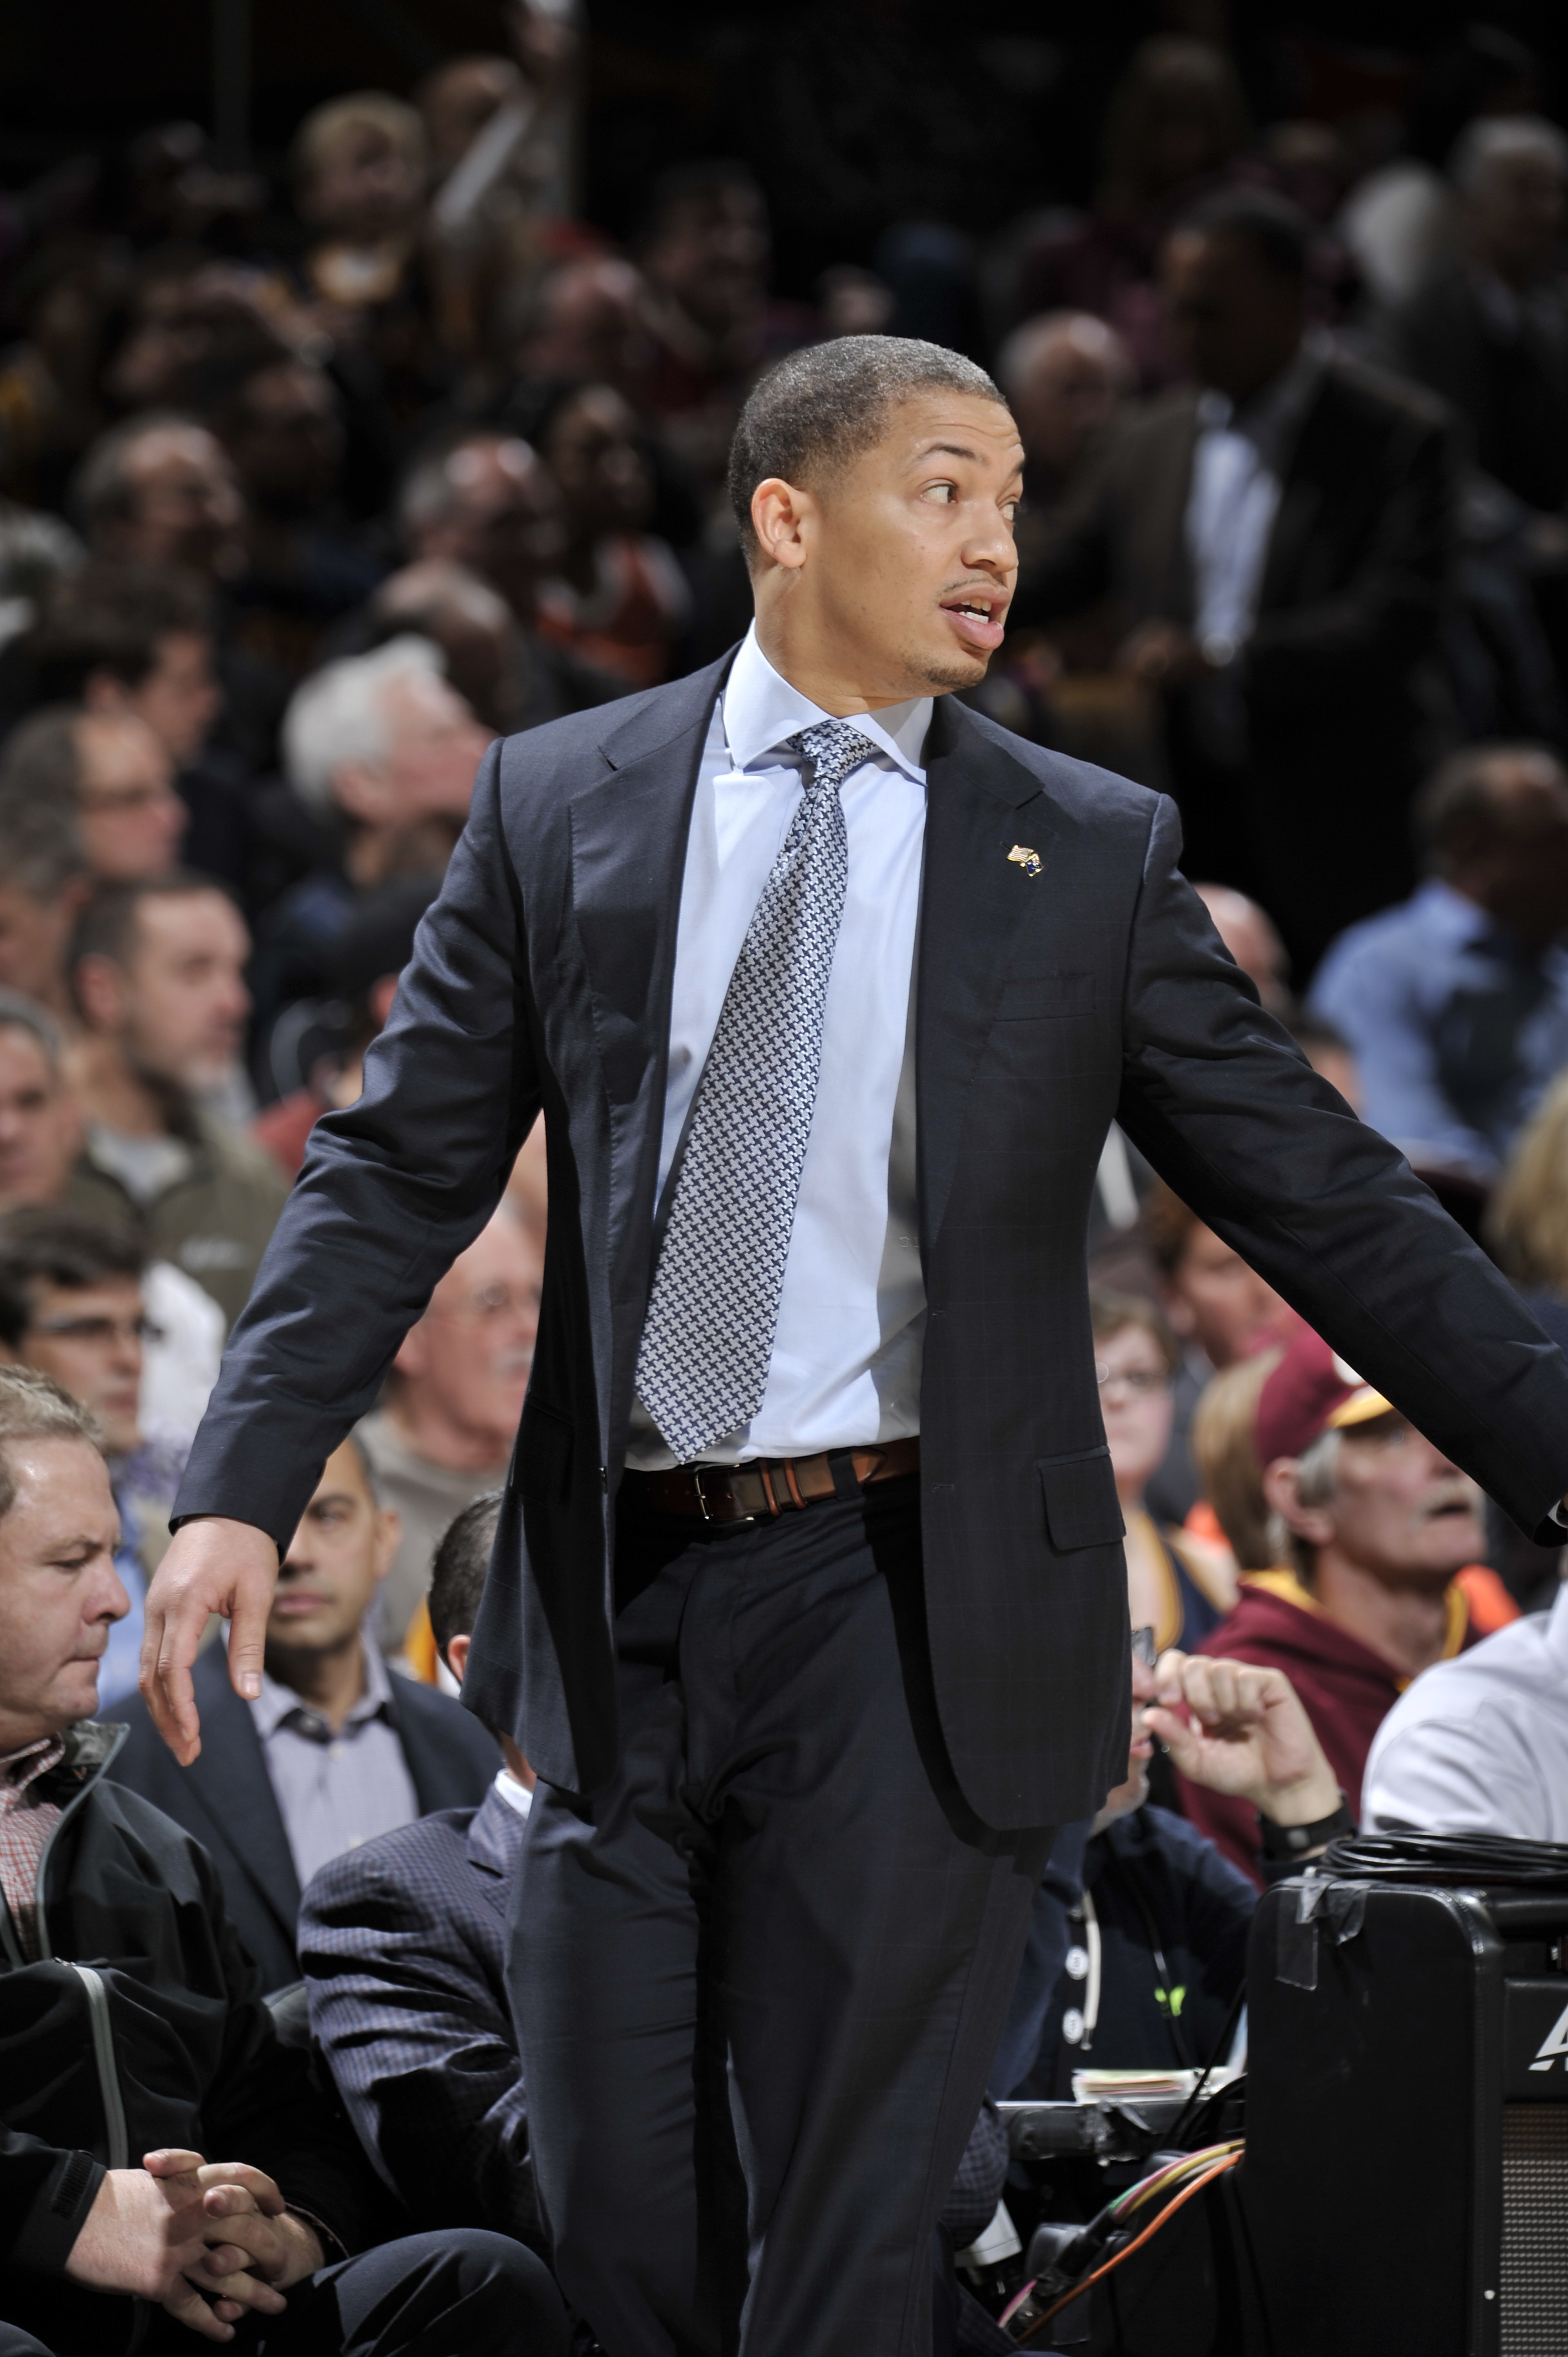 CLEVELAND, OH - JANUARY 25: Tyronn Lue of the Cleveland Cavaliers during the game against the Minnesota Timberwolves on January 25, 2016 at Quicken Loans Arena in Cleveland, Ohio. (Photo by David Liam Kyle/NBAE via Getty Images)